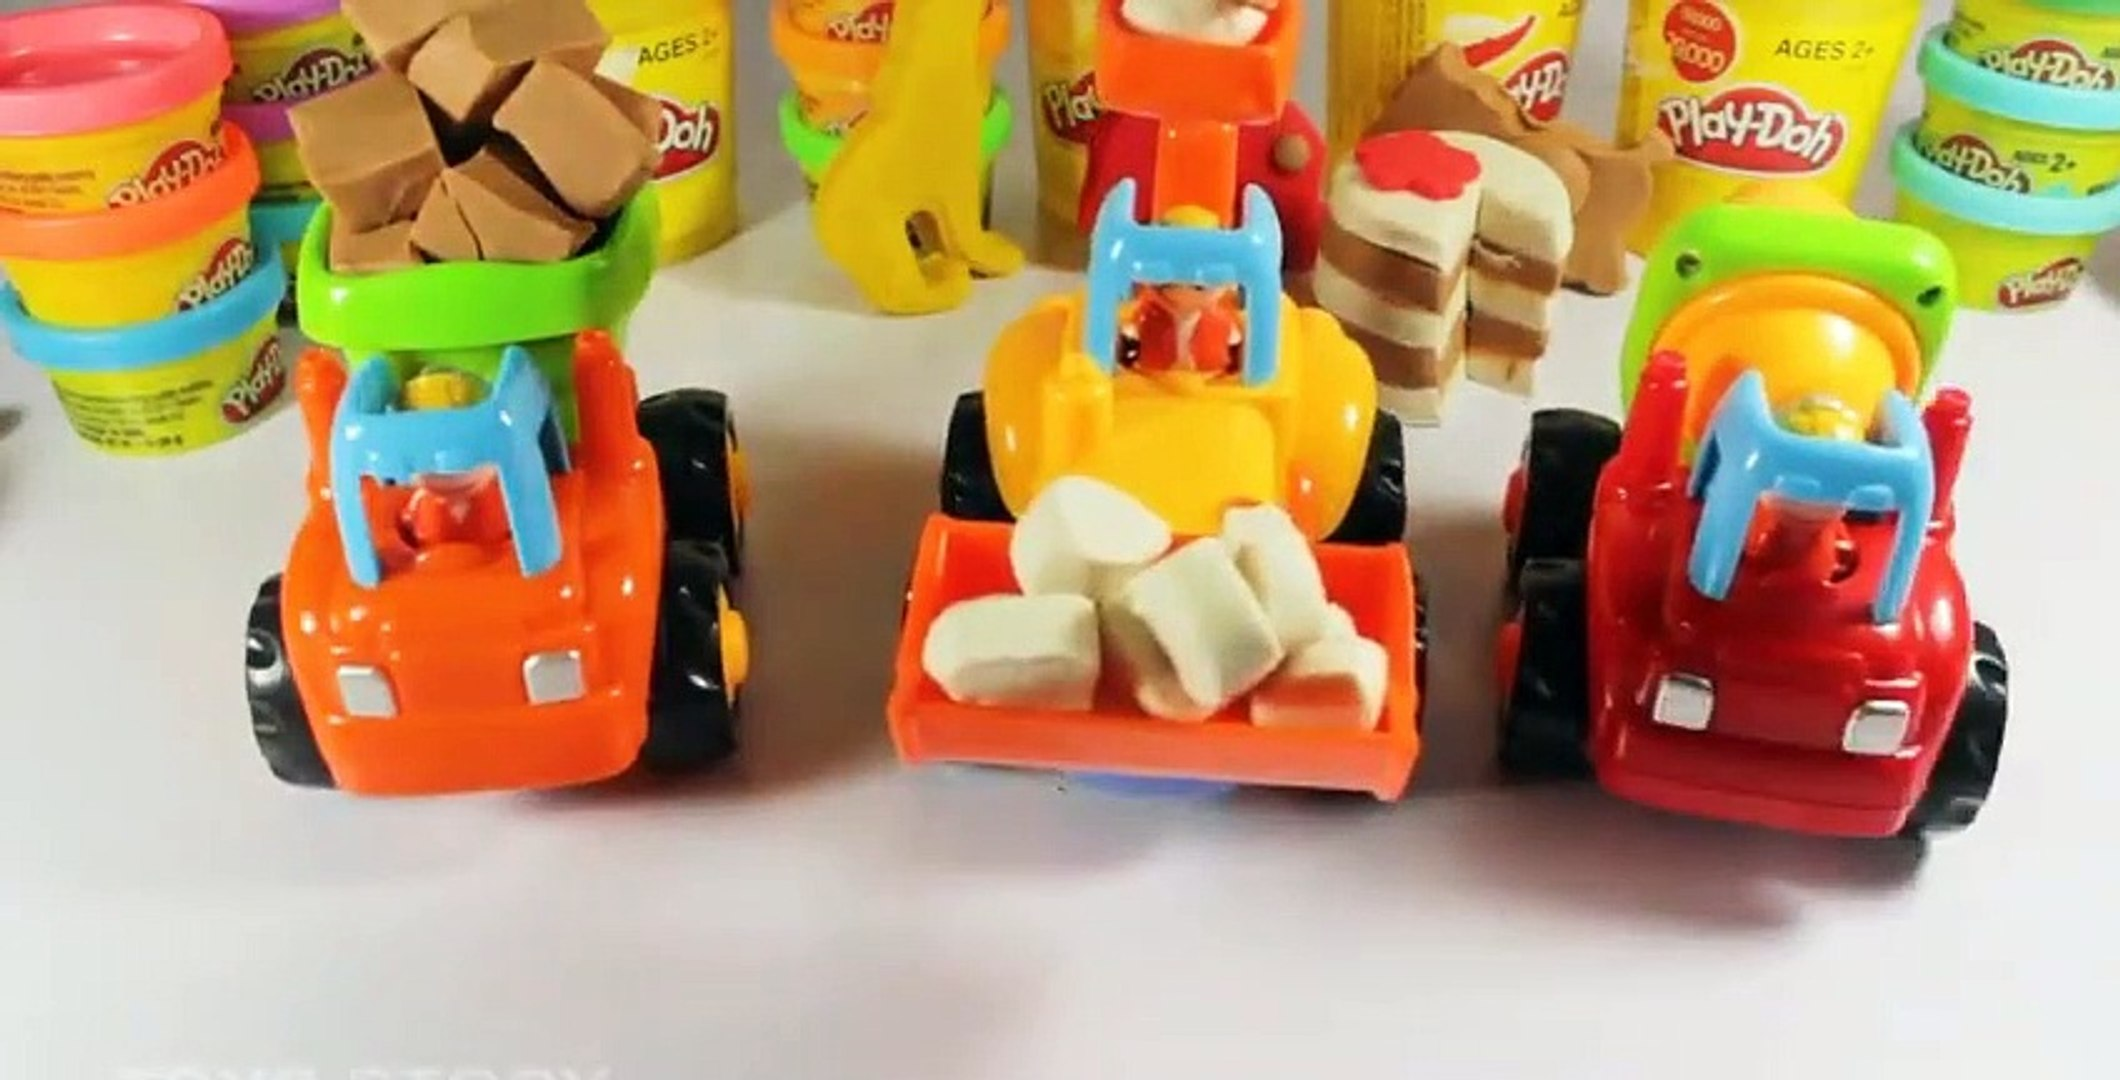 Play Cars Toy For Kids  How To Make Play Cake Video Play Doh #Kids #VIdeos NY